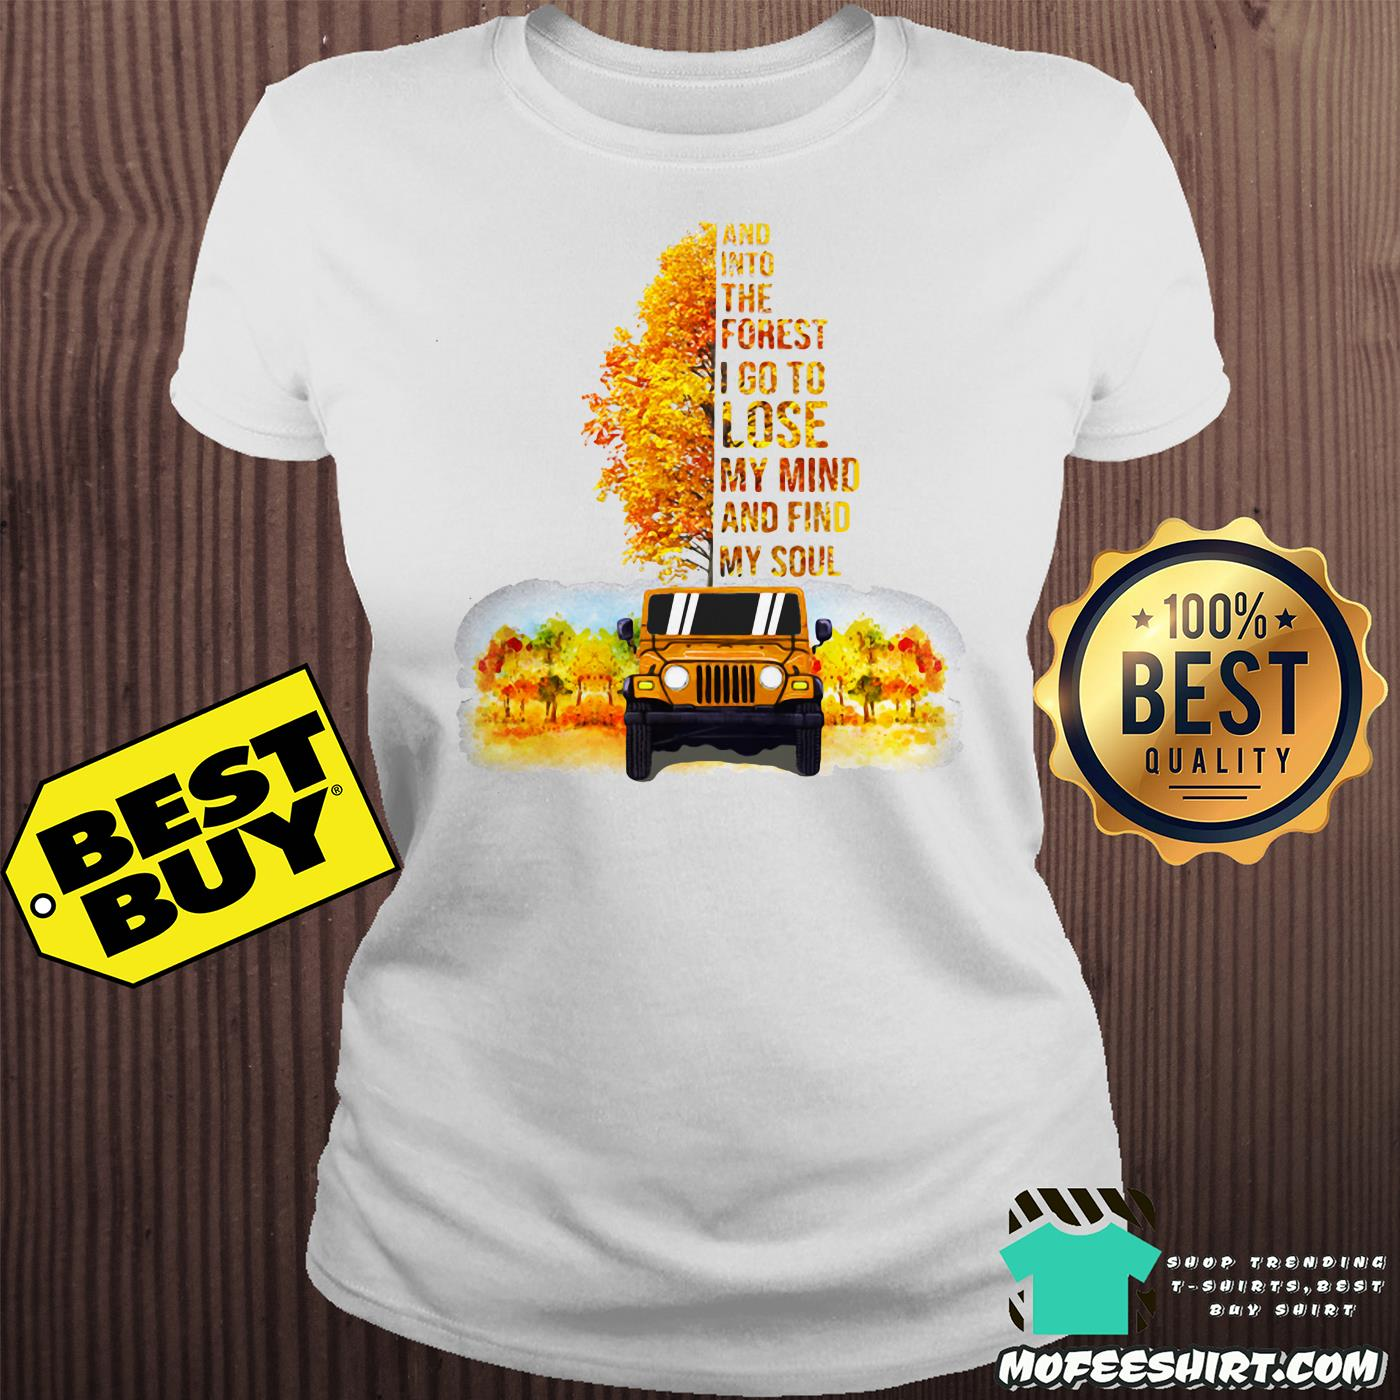 jeep tree and into the forest i go to lose my mind and find my soul autumn ladies tee - Jeep tree And into the forest I go to lose my mind and find my soul Autumn shirt